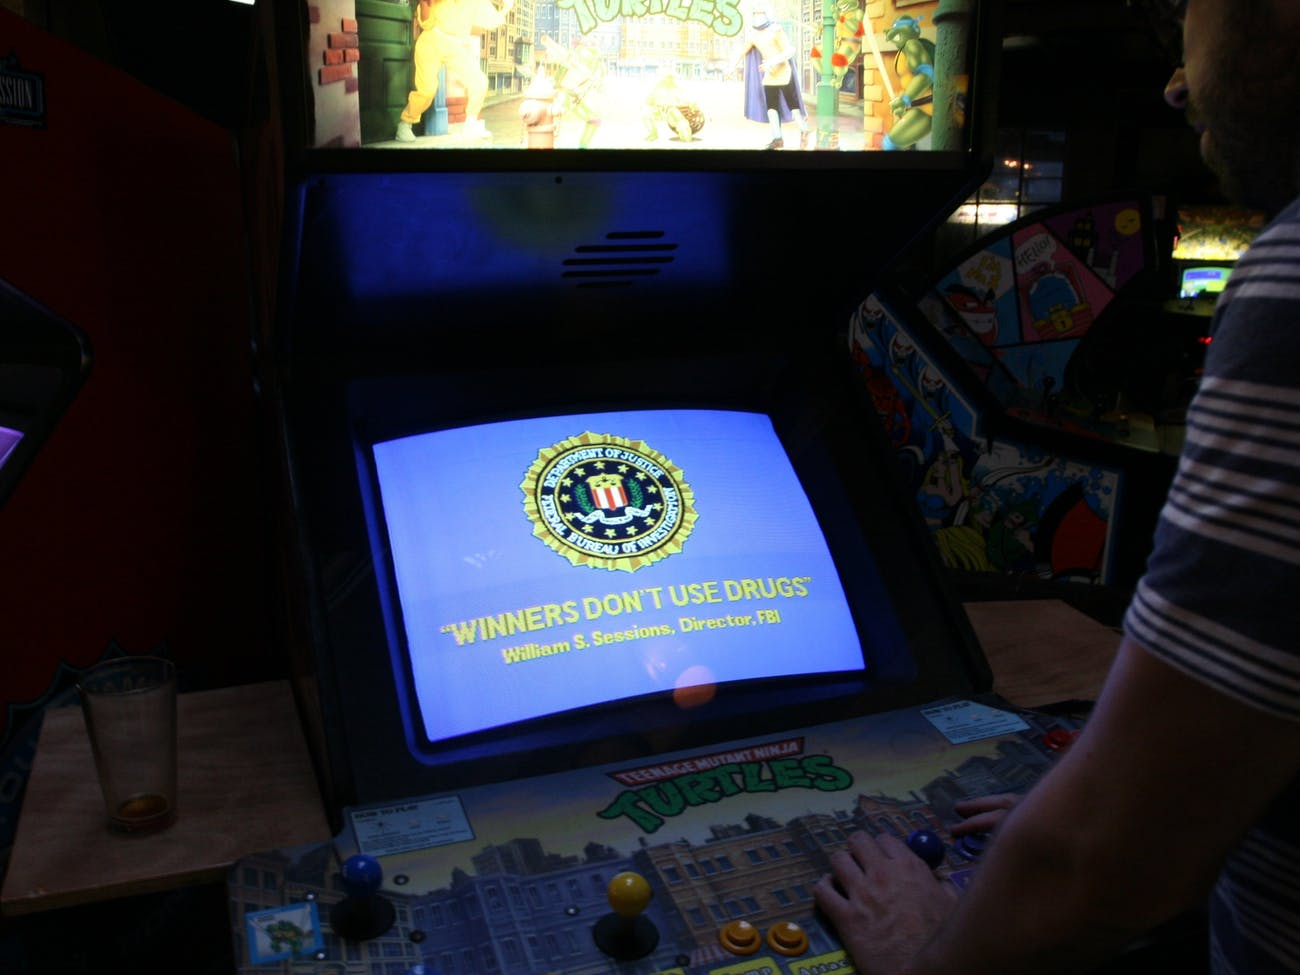 How the F B I  Made 'Winners Don't Use Drugs' the Arcade